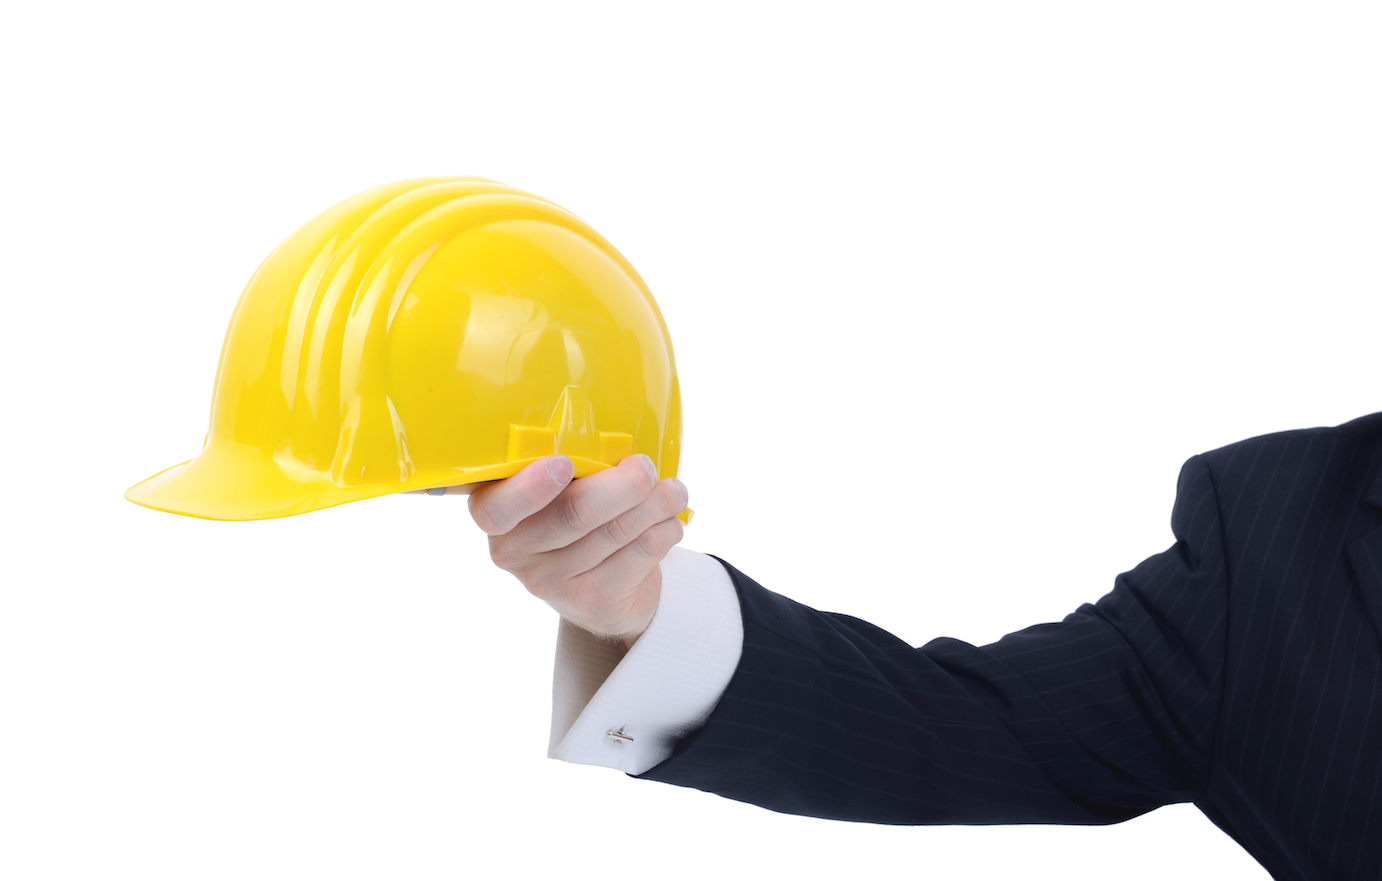 Hard Hat held by man in suit and cufflinks